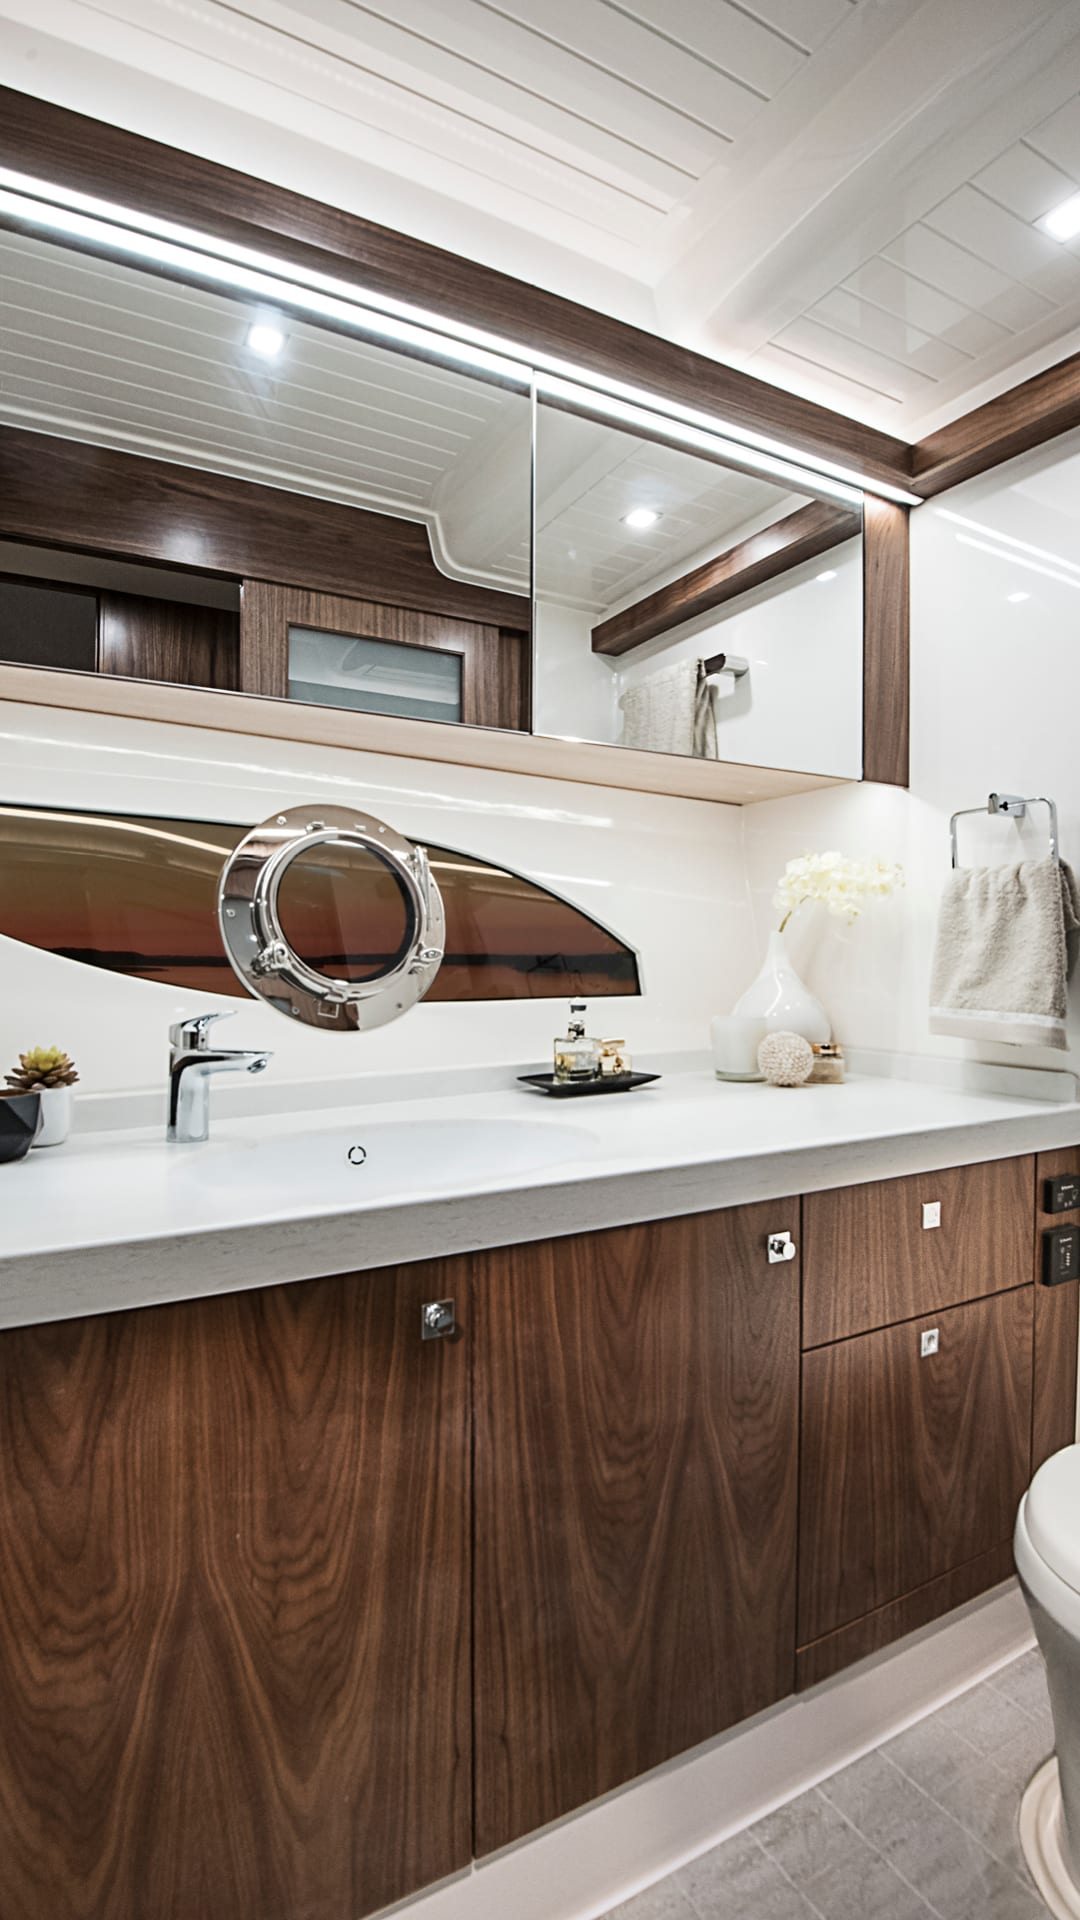 Riviera 72 Sports Motor Yacht Presidential Master Ensuite 01 – Satin Walnut Timber Finish